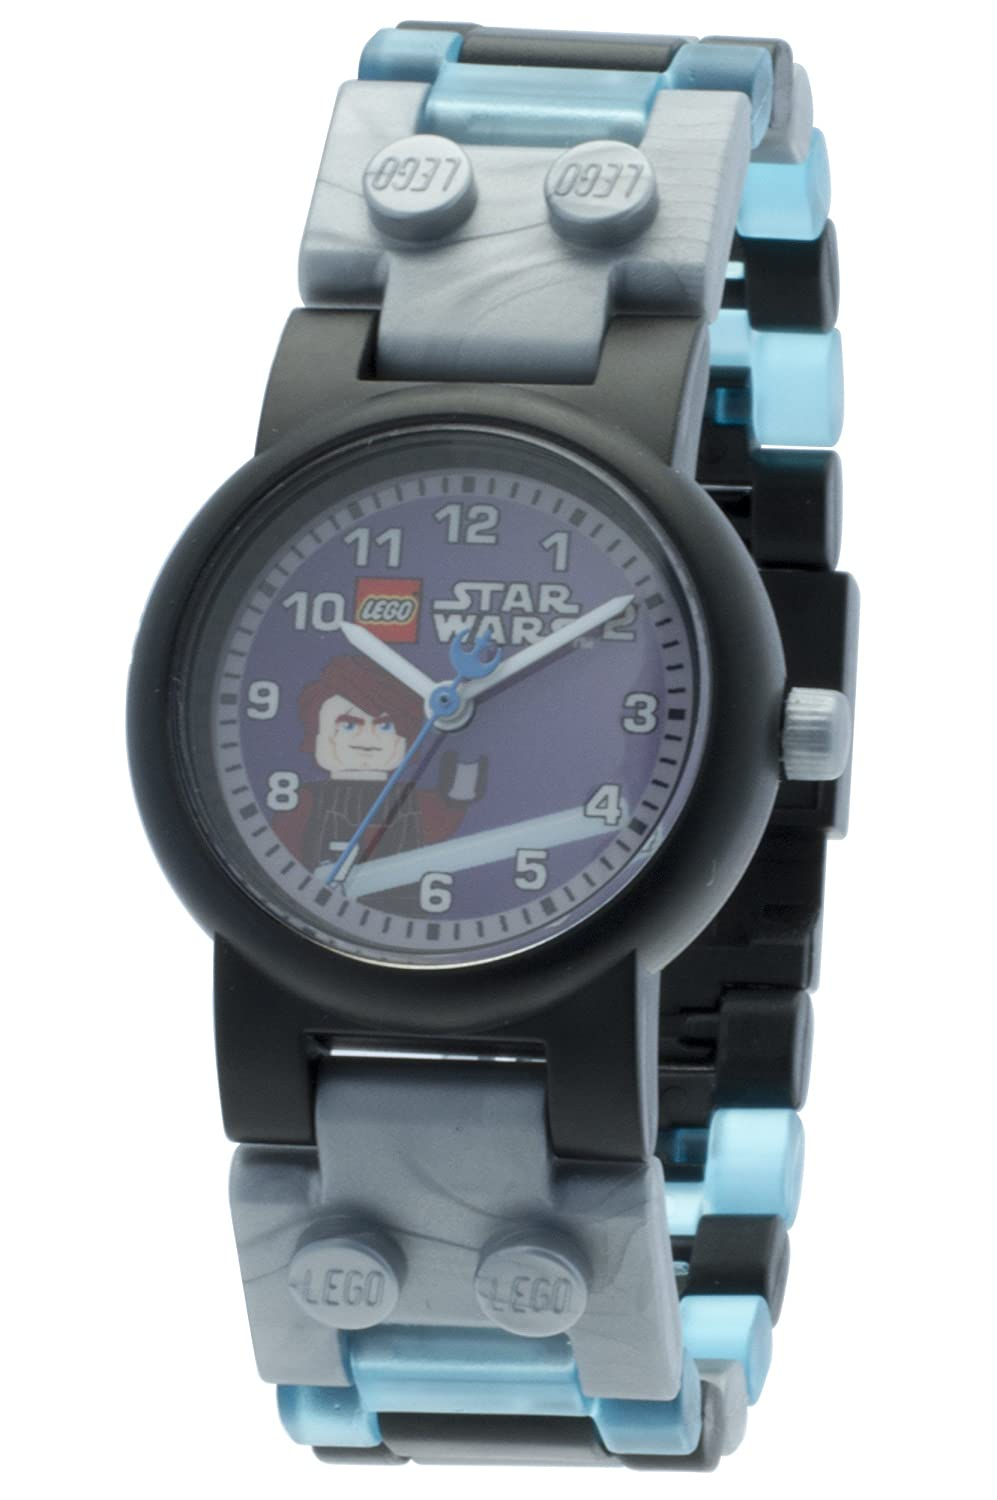 LEGO Star Wars 8020288 Anakin Skywalker Kids Buildable Watch with Link Bracelet and Minifigure | gray/blue | plastic | 28mm case diameter| analog quartz | boy girl | official